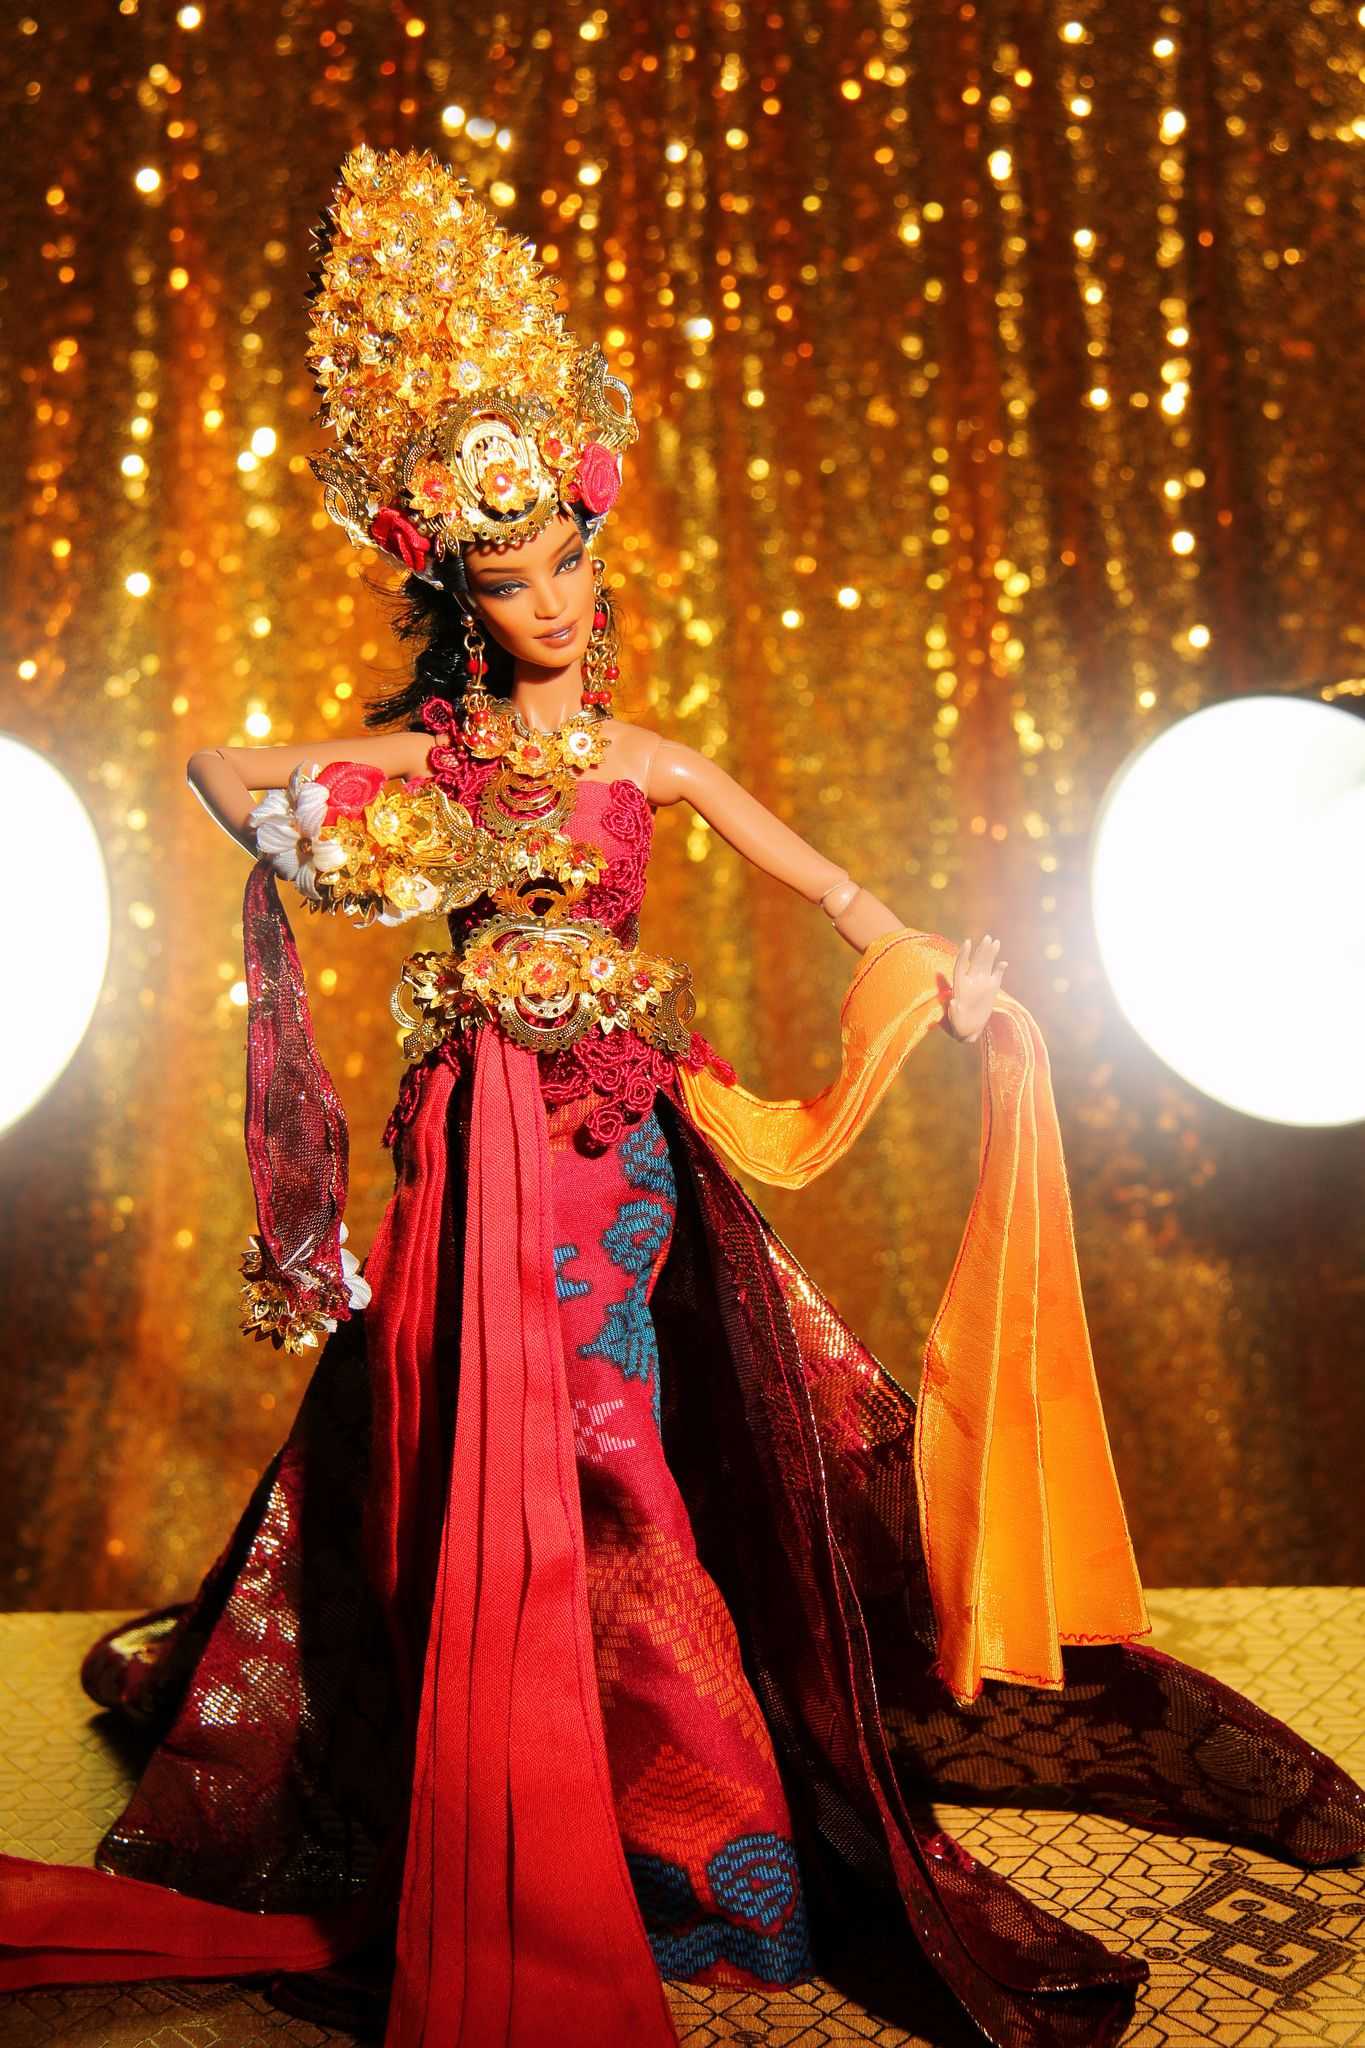 Miss BEauty Doll Indonesia 2016 National Costume in 2020